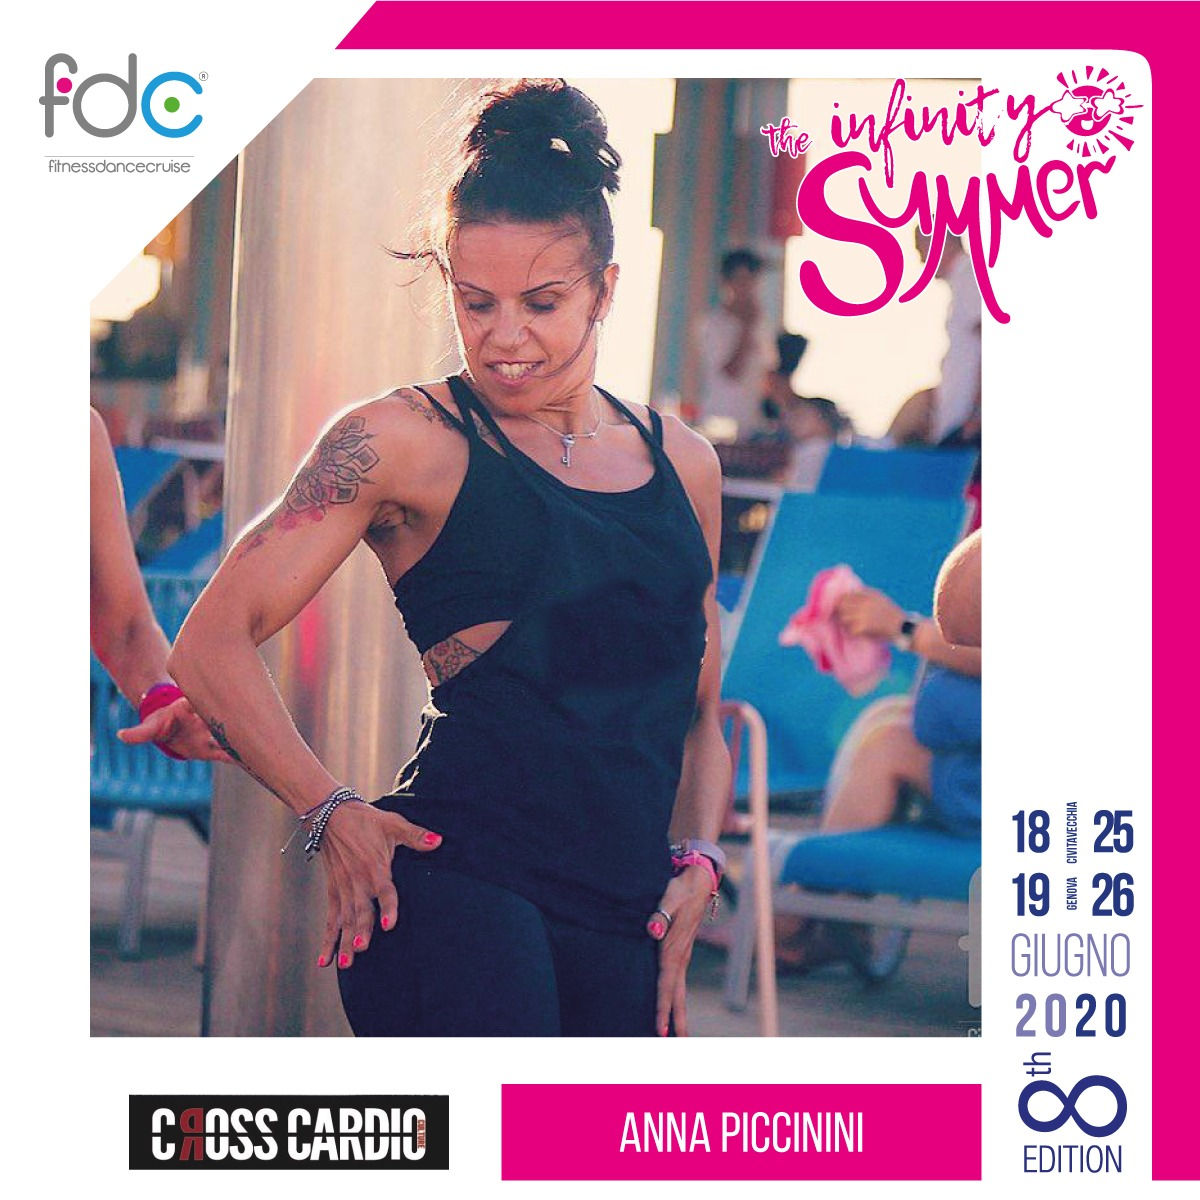 Cross Cardio FDC Presenter Anna Piccinini